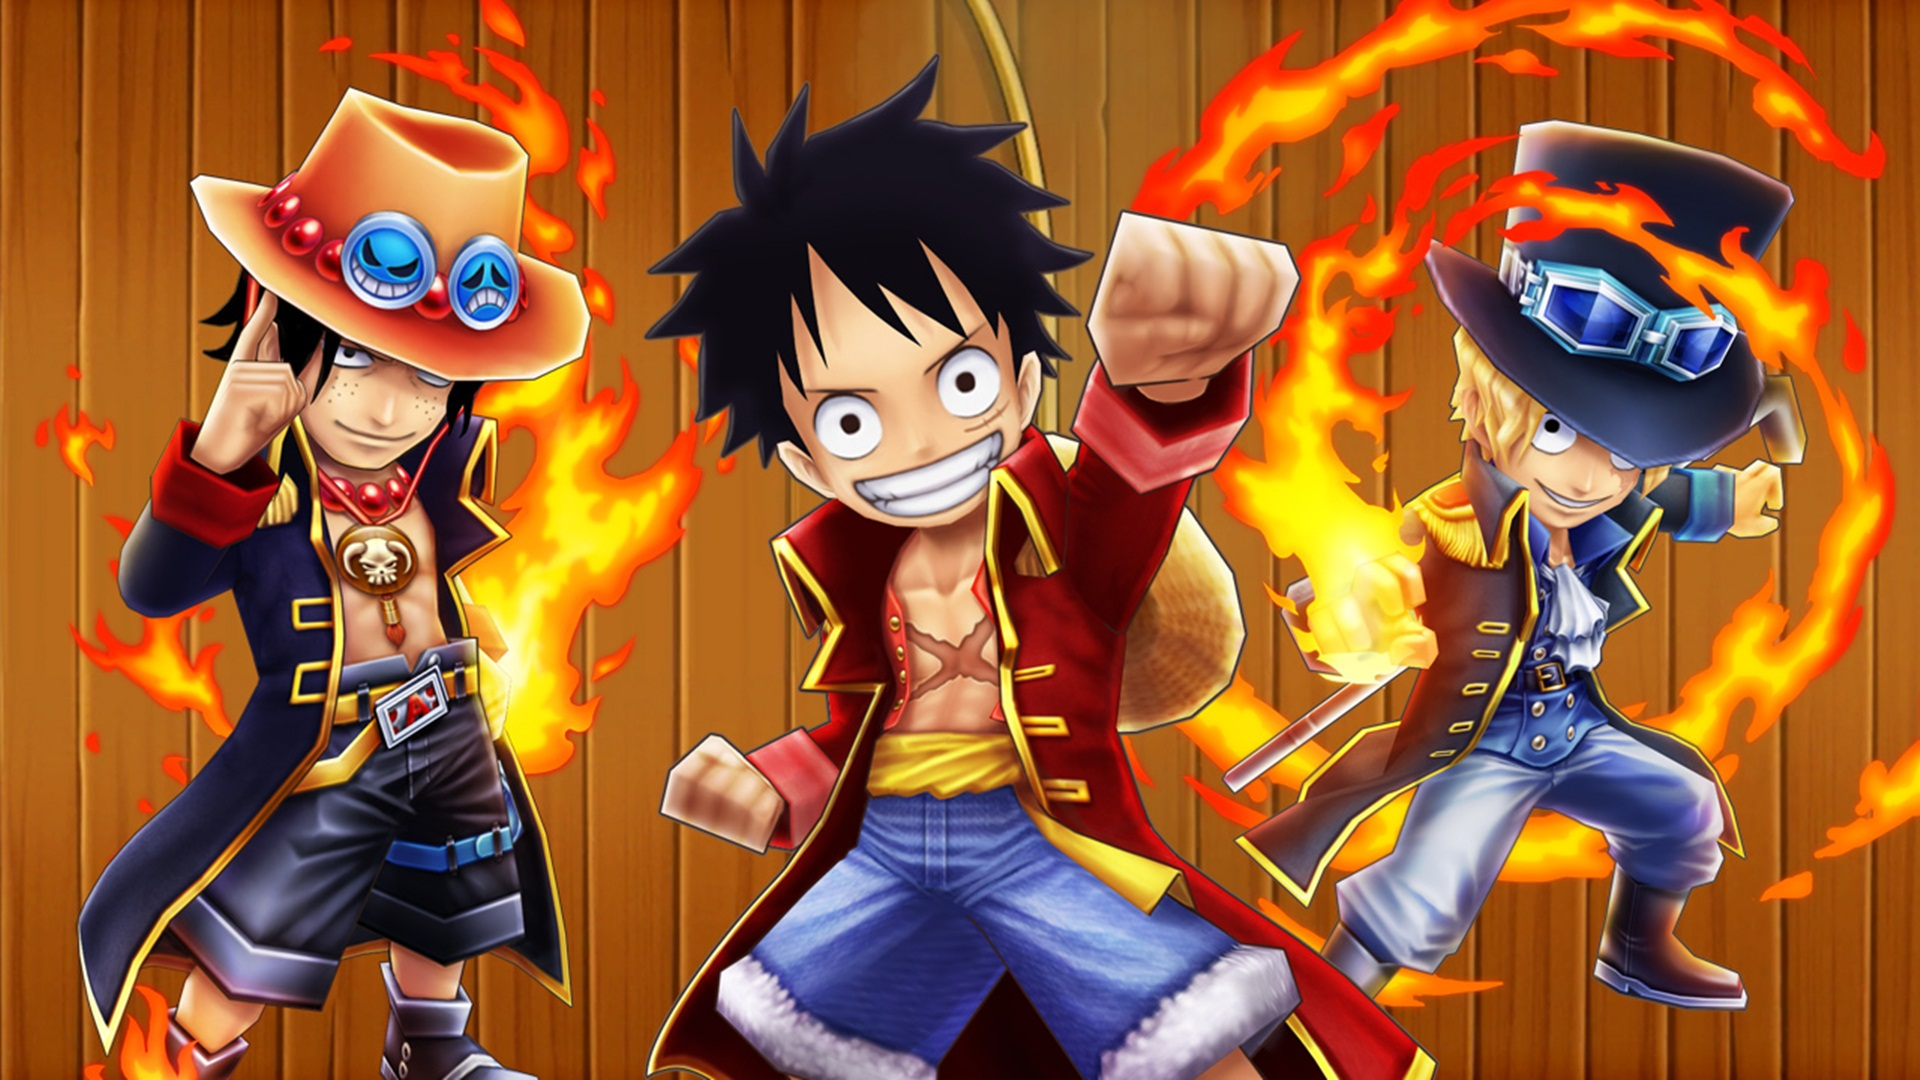 One Piece Wallpaper Posted By Ryan Cunningham